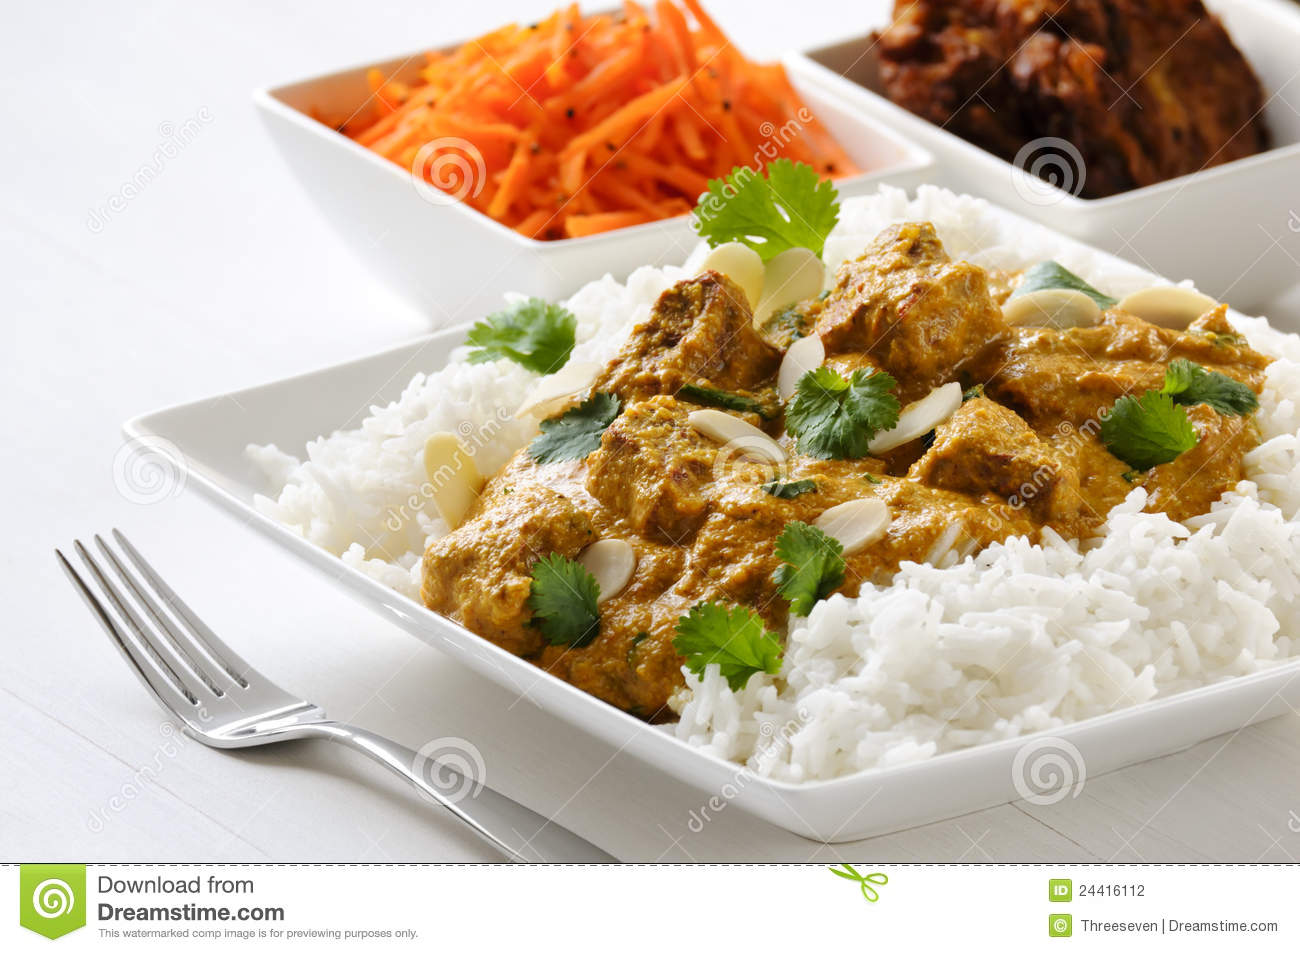 How could you describe amazing rice and curry?